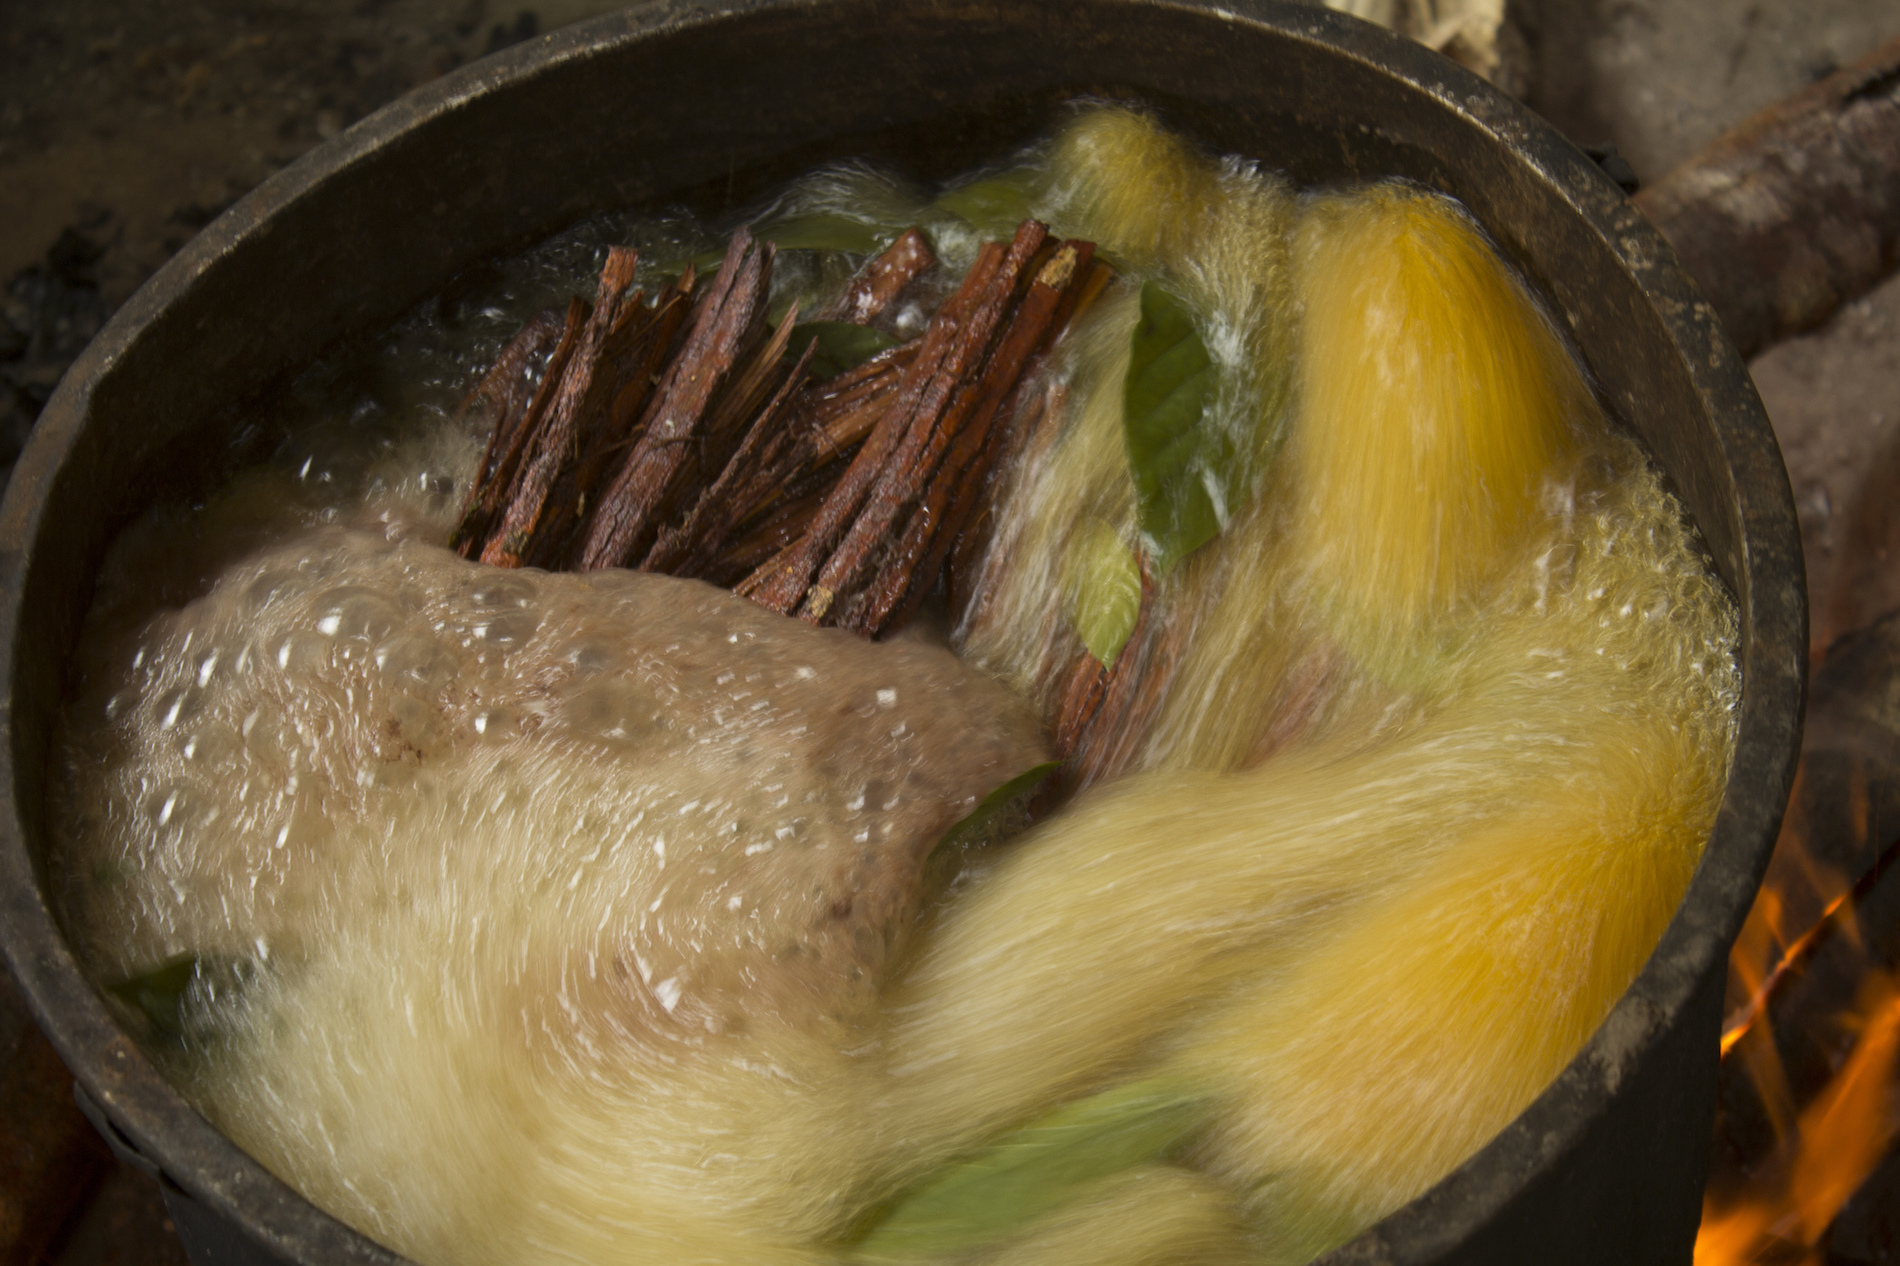 America Is Getting Its First Legal Ayahuasca Church - VICE